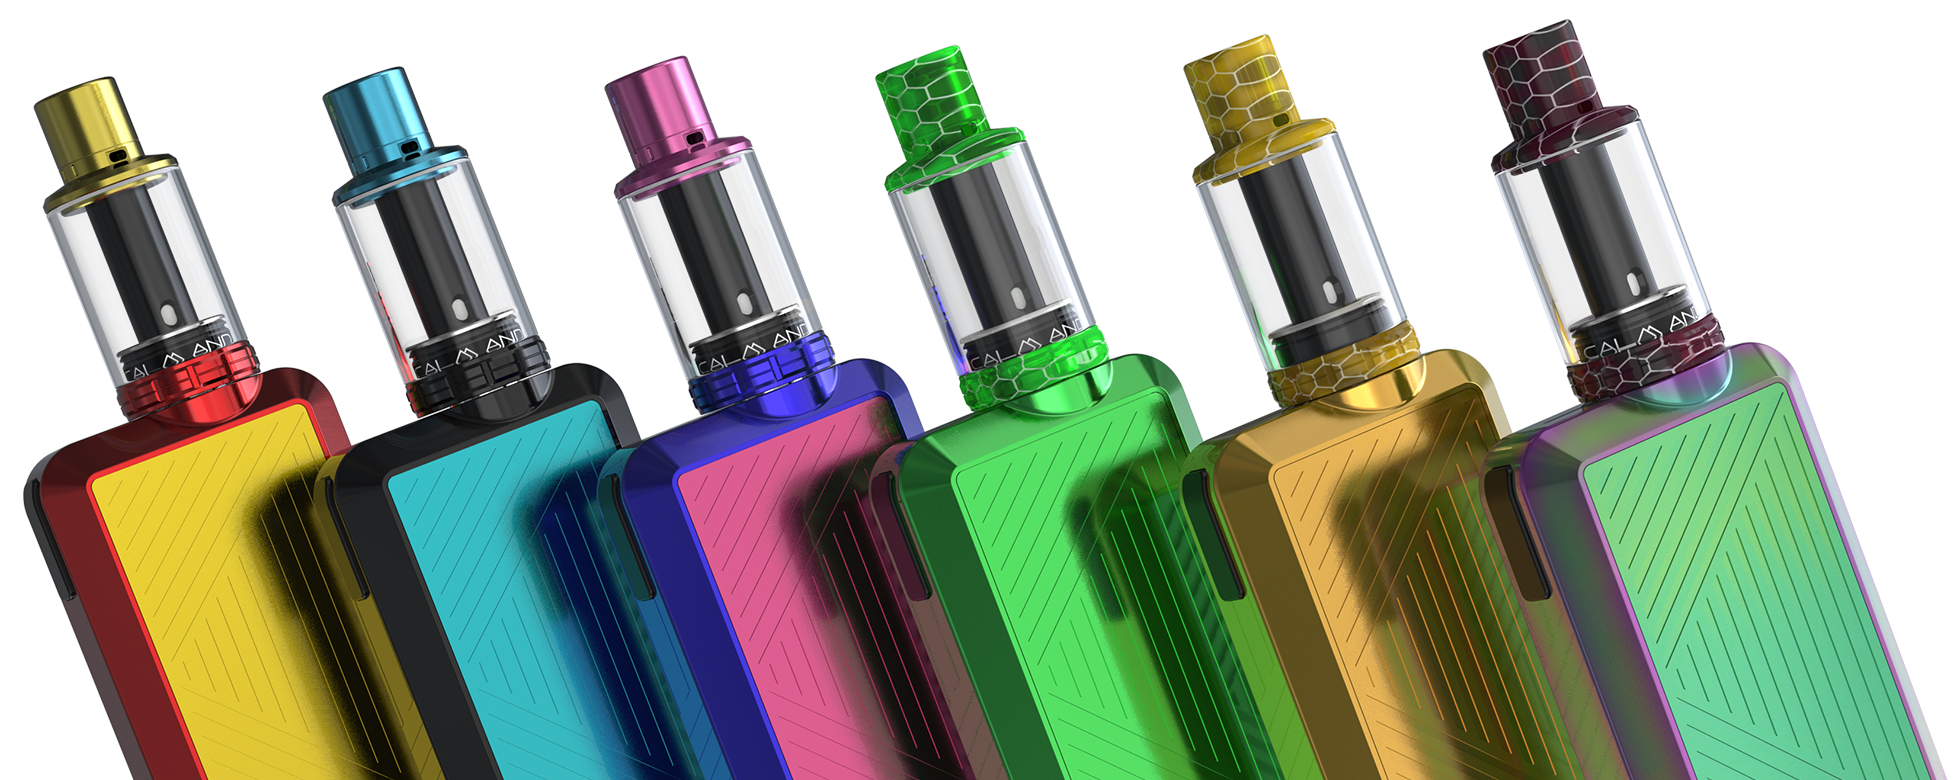 Joyetech Batpack with Joye ECO D16 Starter Kit